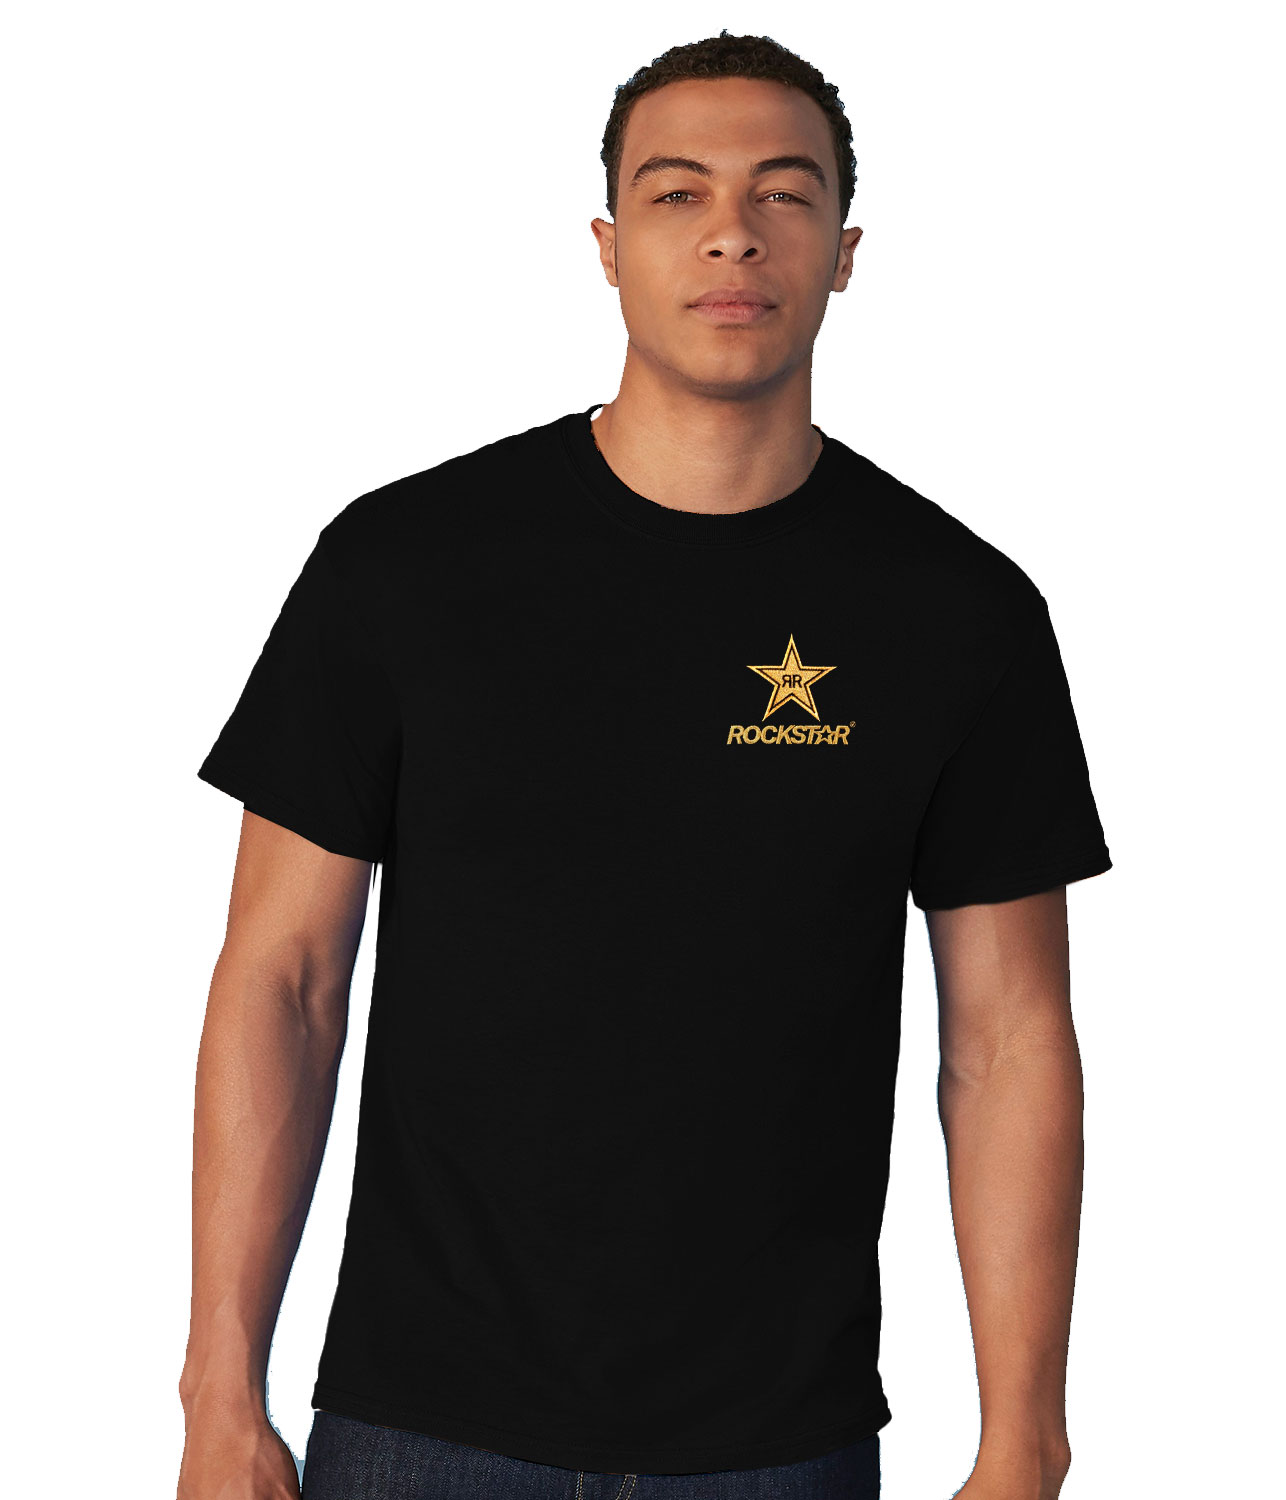 HEAVY COTTON™ T-SHIRT - ROCKSTAR